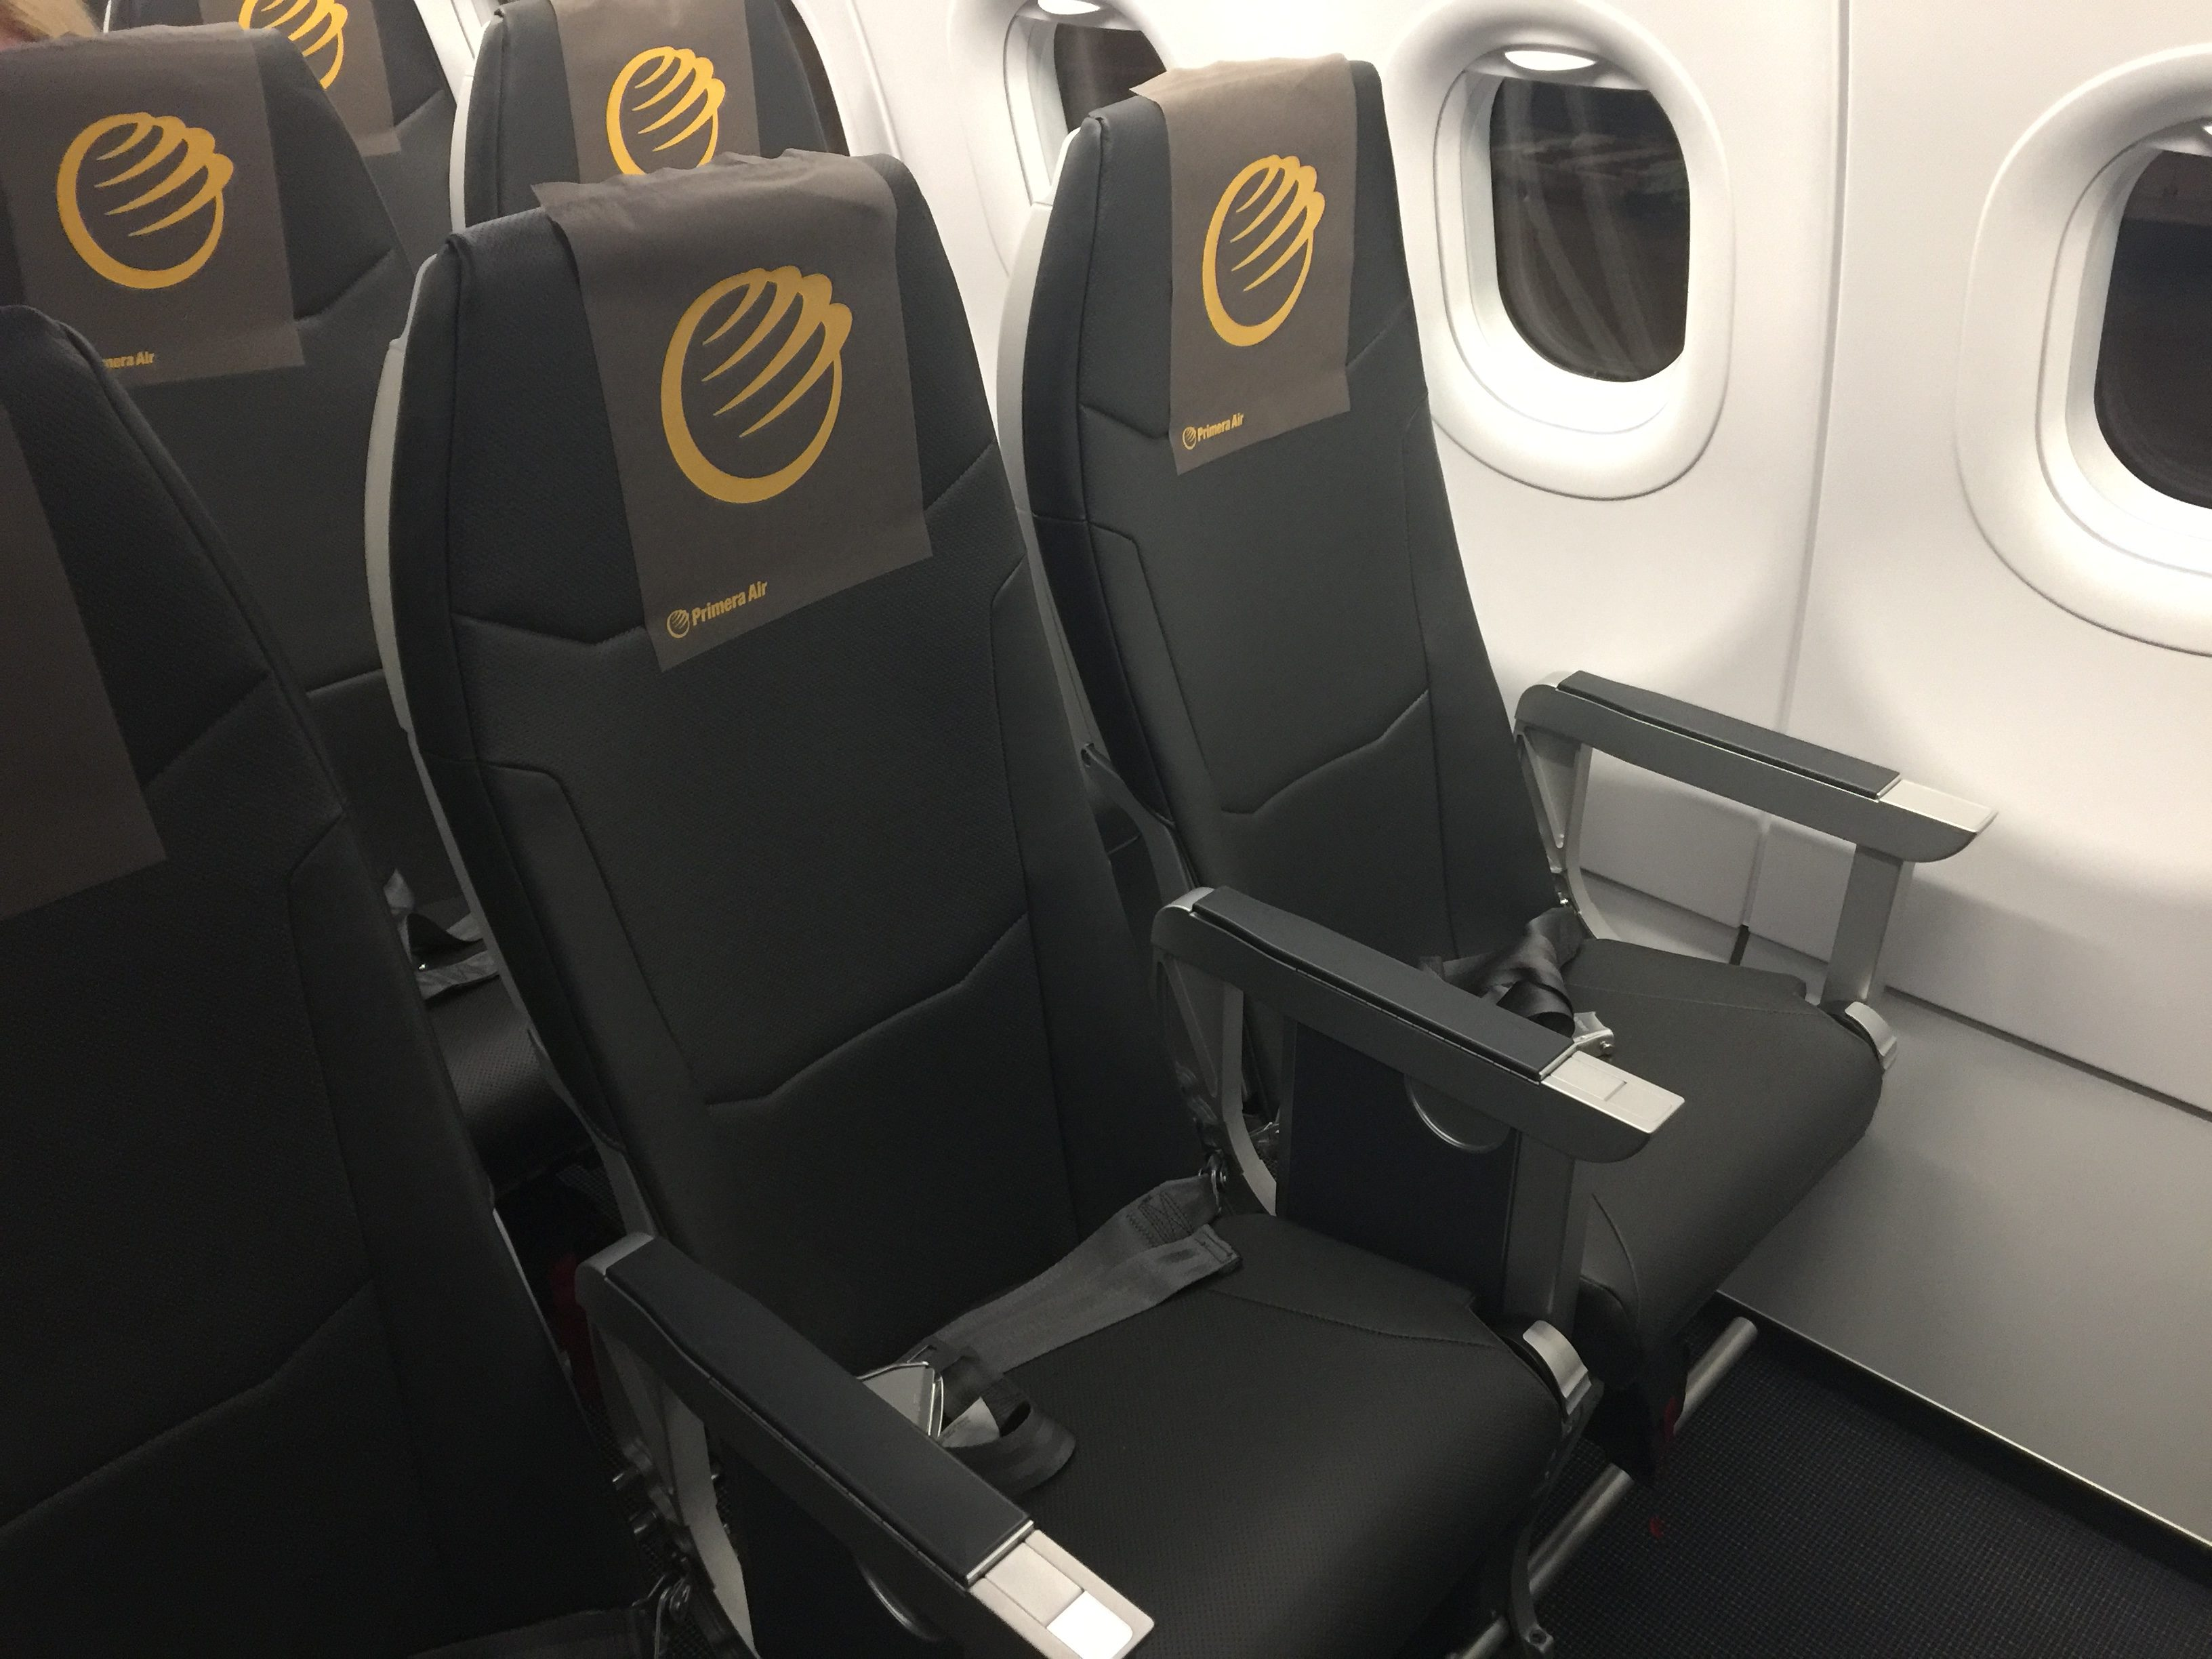 Walking Past The 16 Seat Premium Cabin Into Economy I Was Instantly Reminded Of Frontier Airlines Interior As Style Are Near Identical